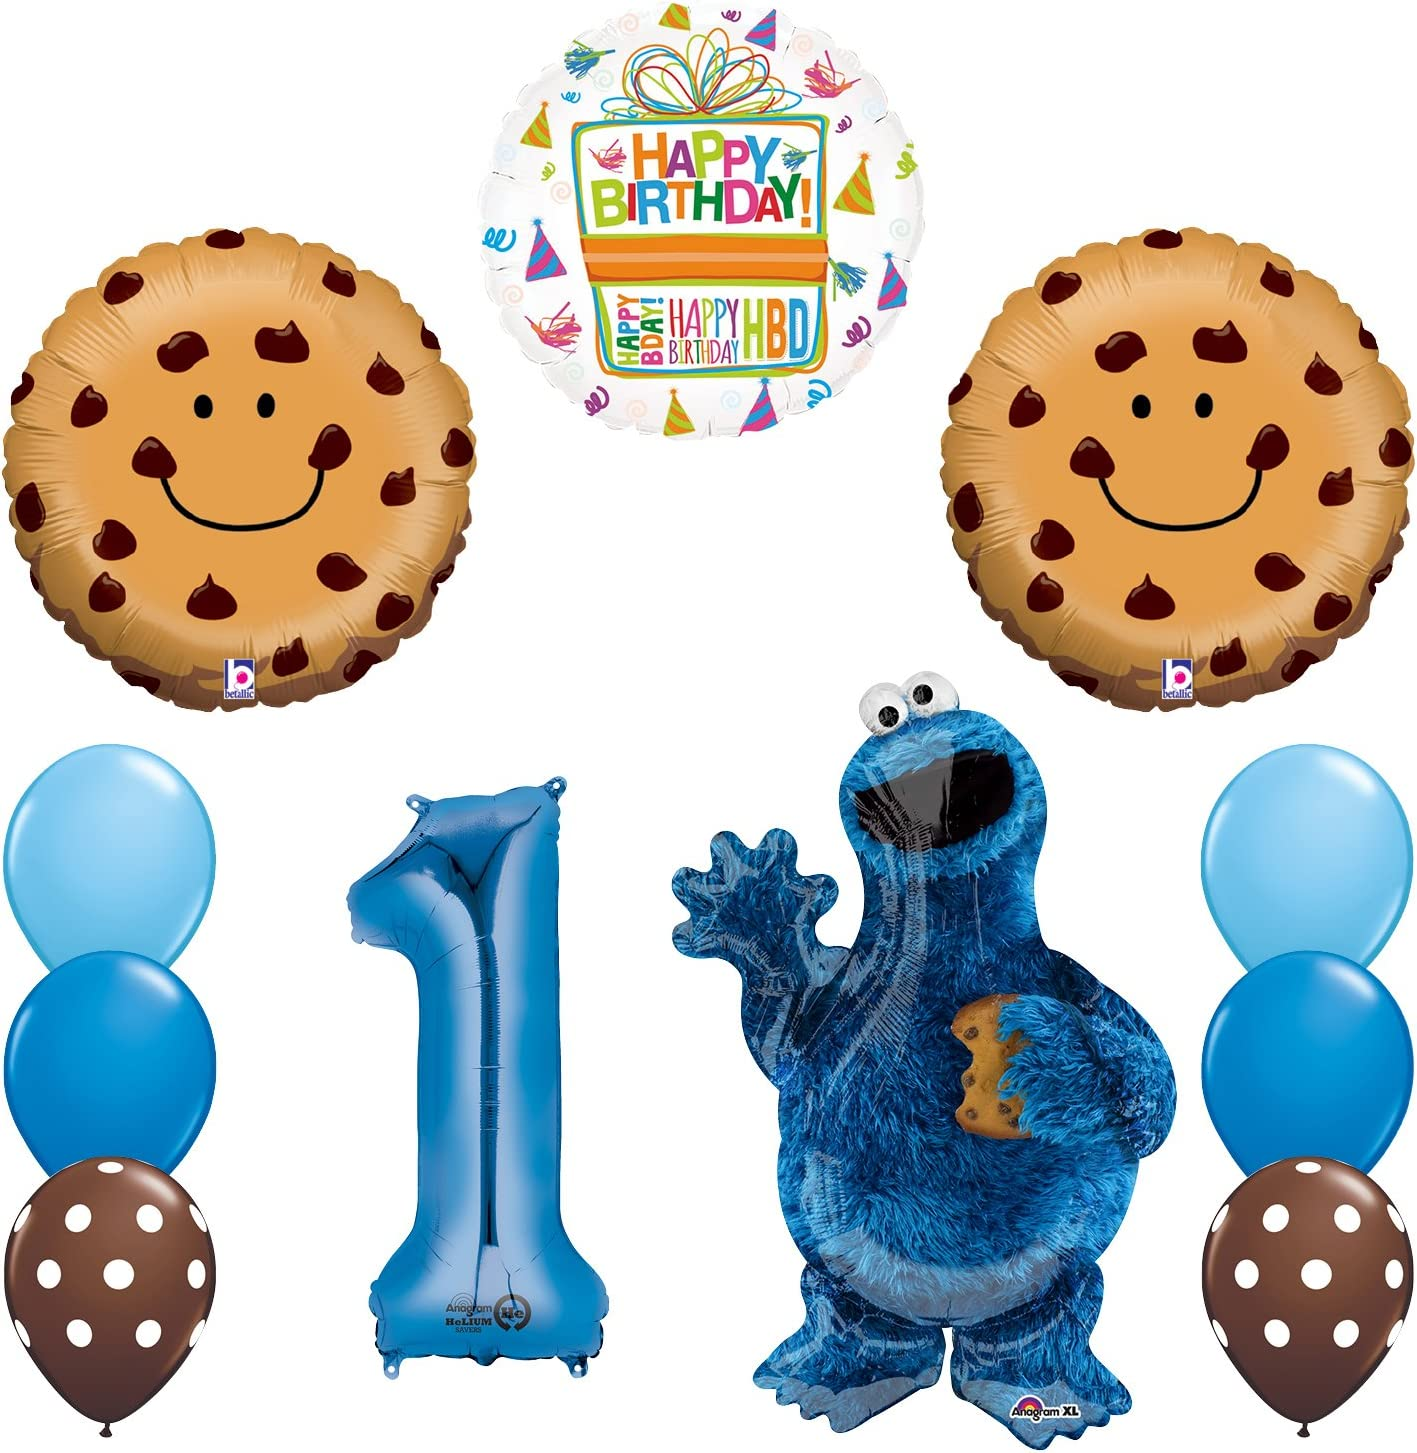 Mayflower Products Sesame Street Cookie Monsters 1st Birthday Party Supplies and Balloon Decorations